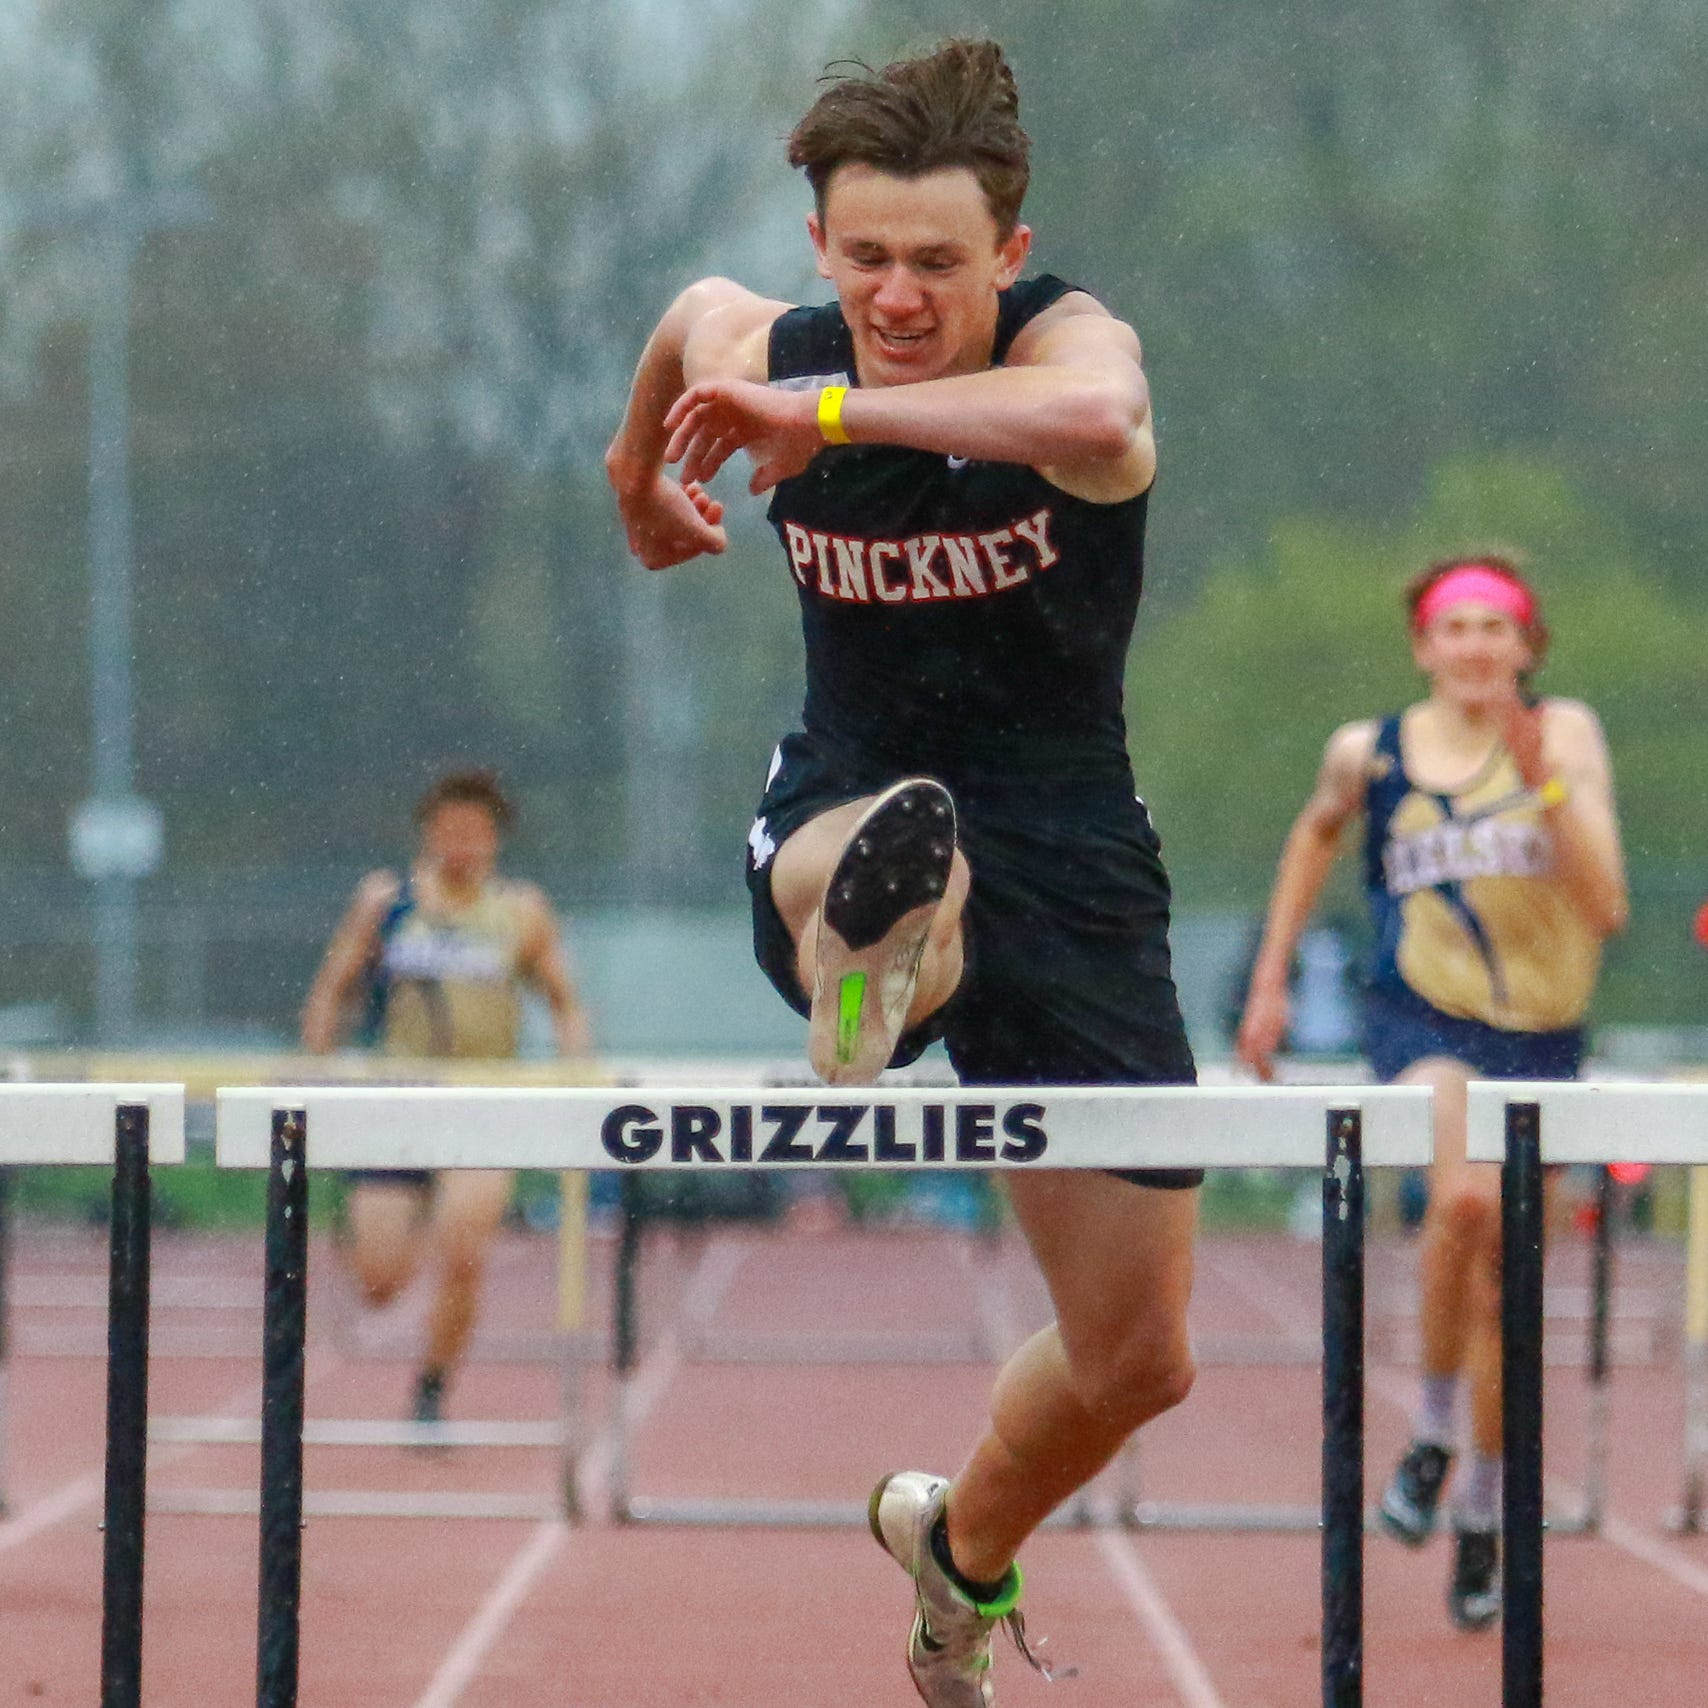 After two close misses, it's state track meet or bust for Pinckney hurdler Dylan Deck